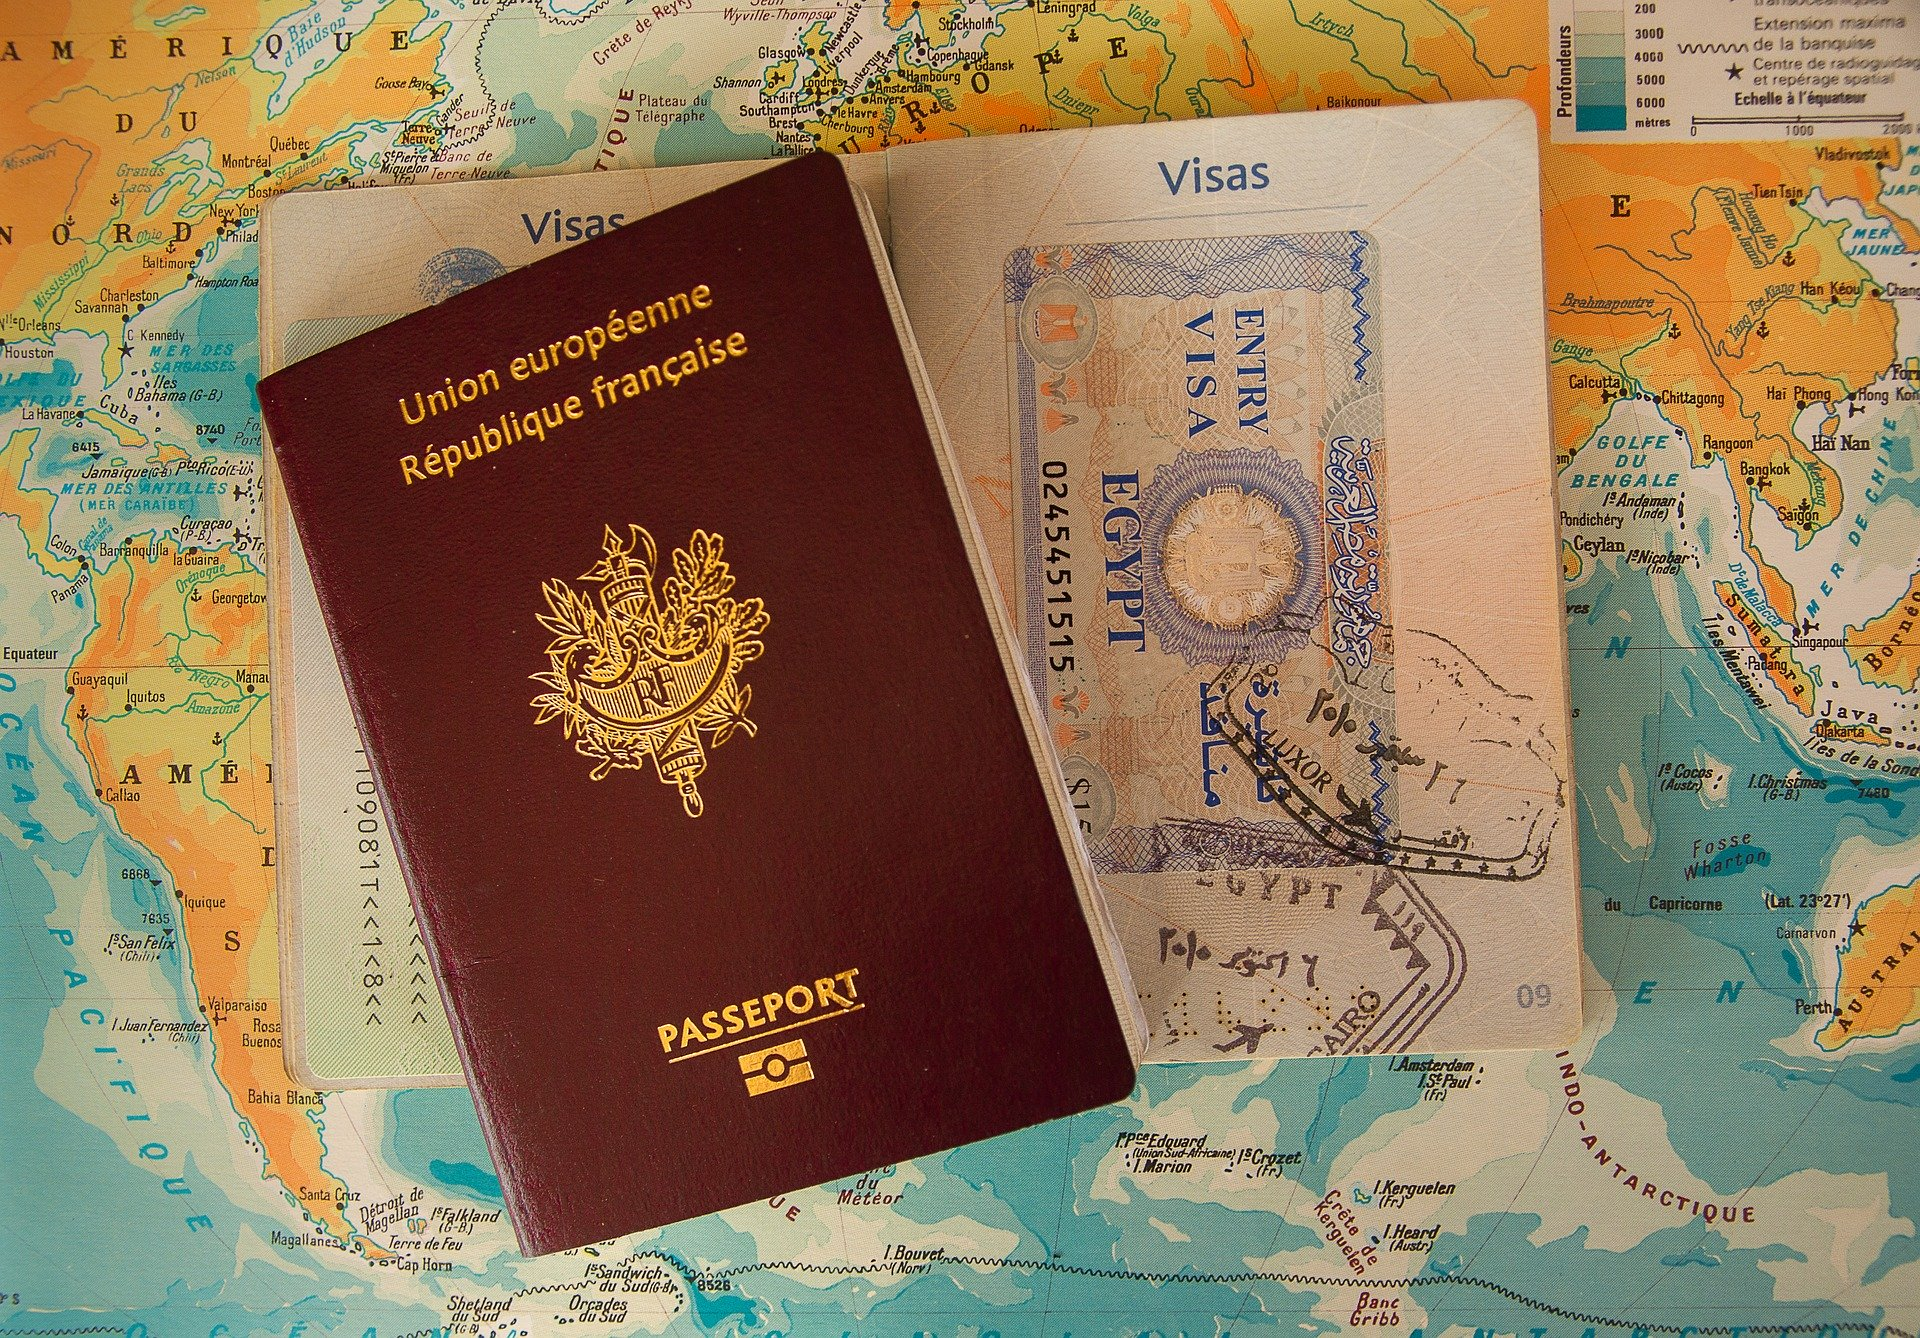 EXTENSION VISA CAN THO